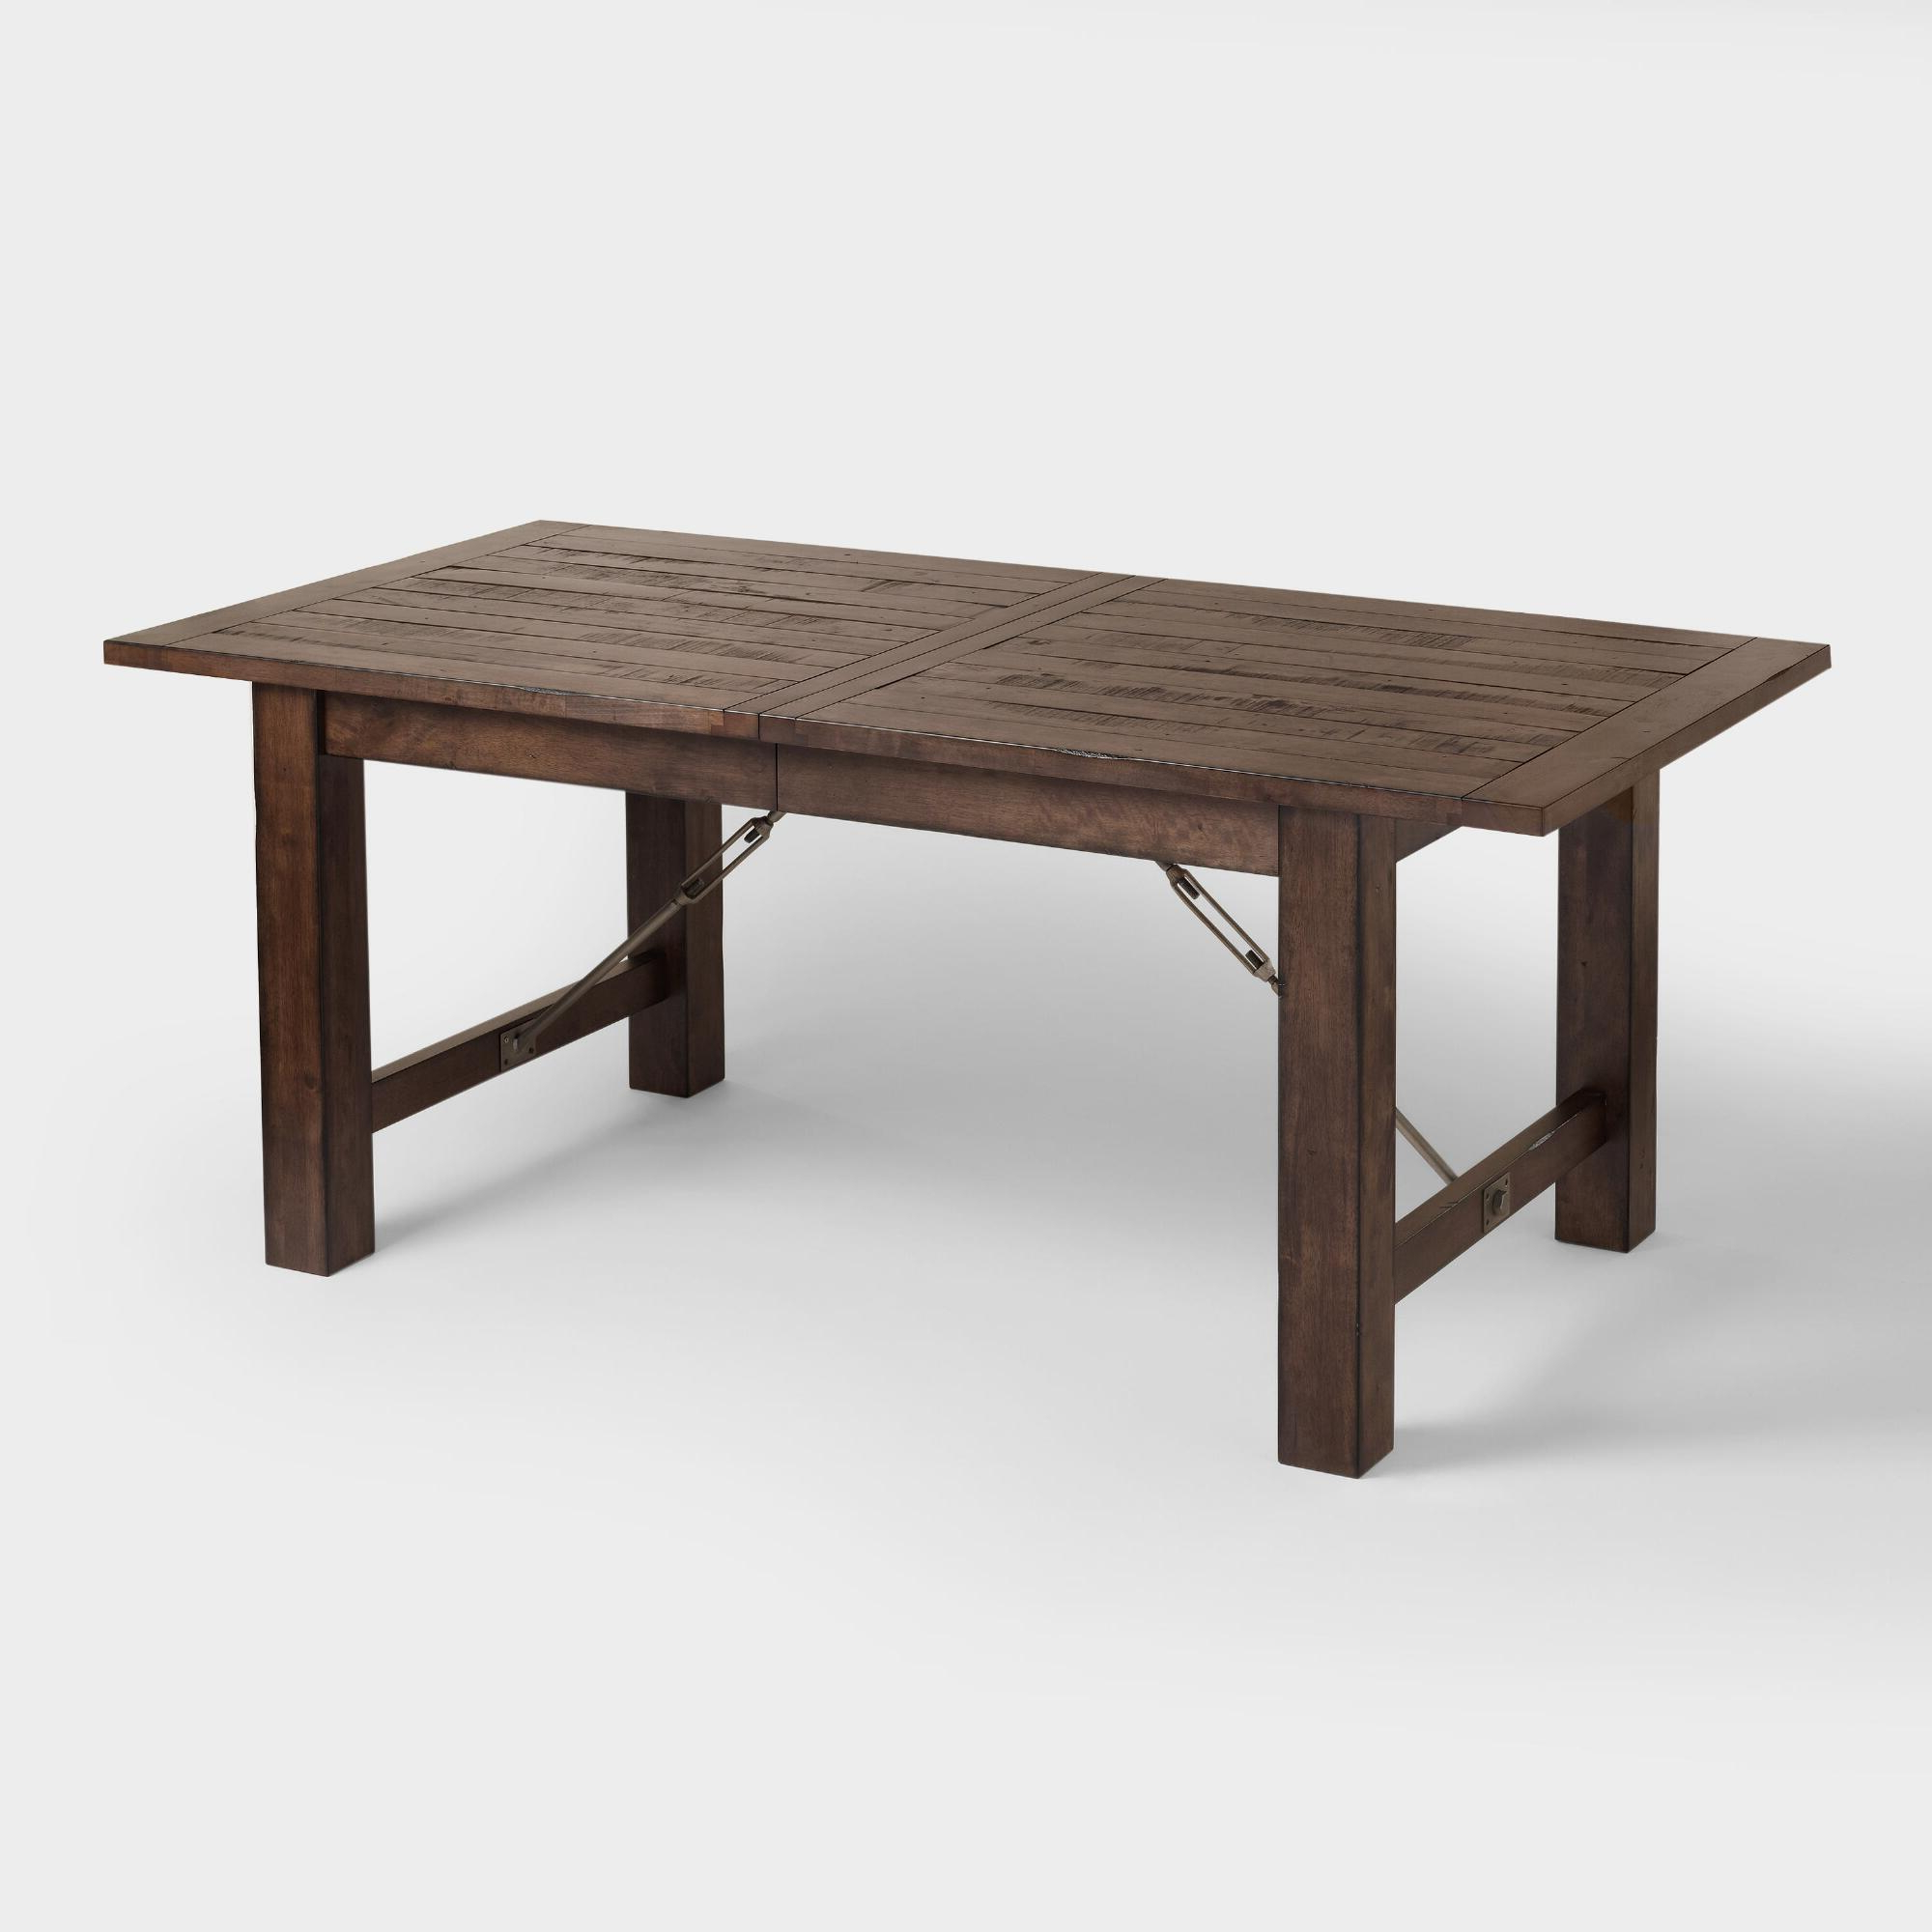 Wood Garner Extension Dining Table: Brownworld Market In With Regard To Most Popular Tuscan Chestnut Toscana Pedestal Extending Dining Tables (View 11 of 25)